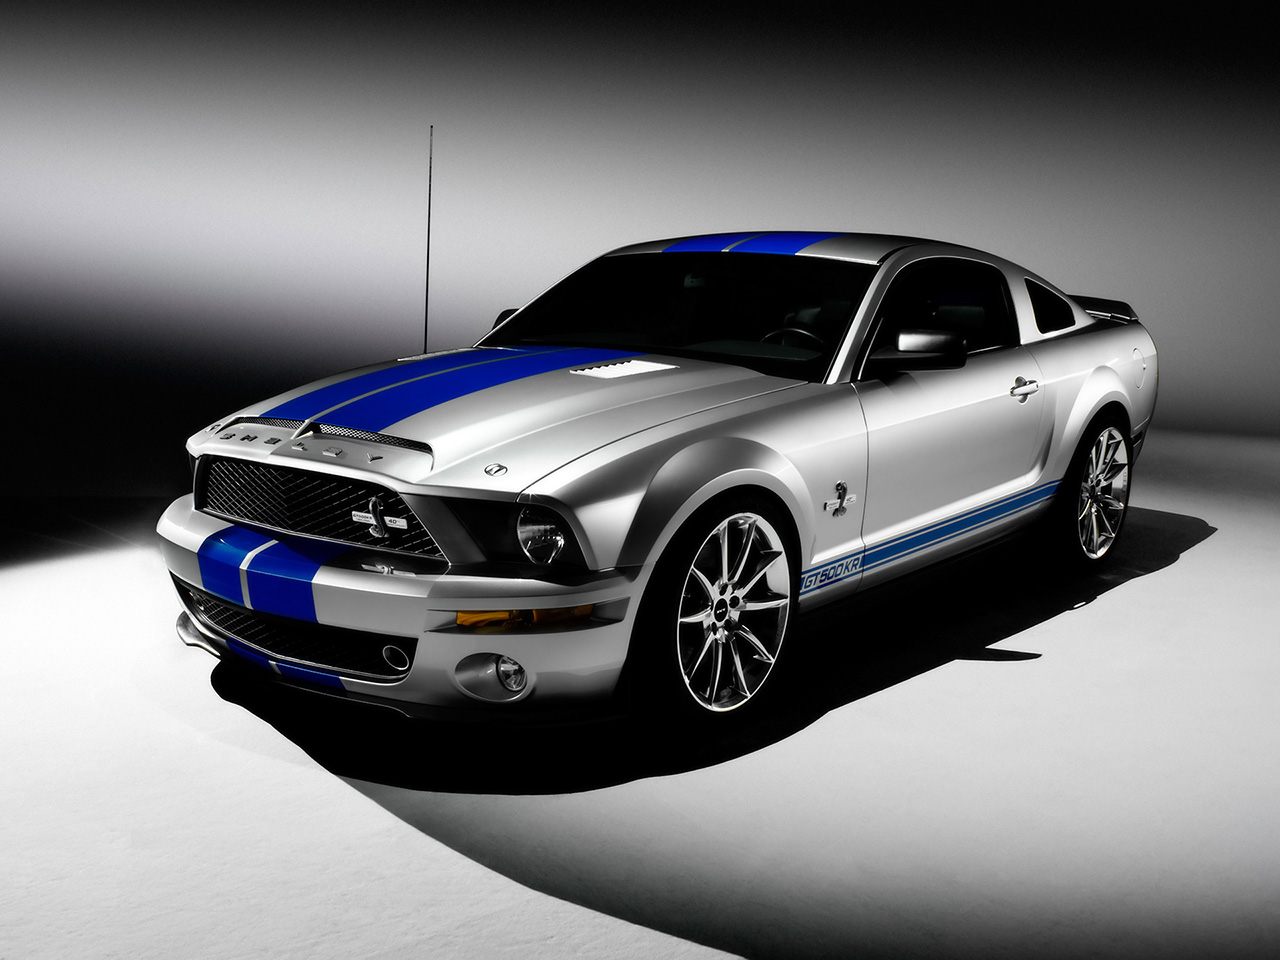 Shelby gt photo - 3